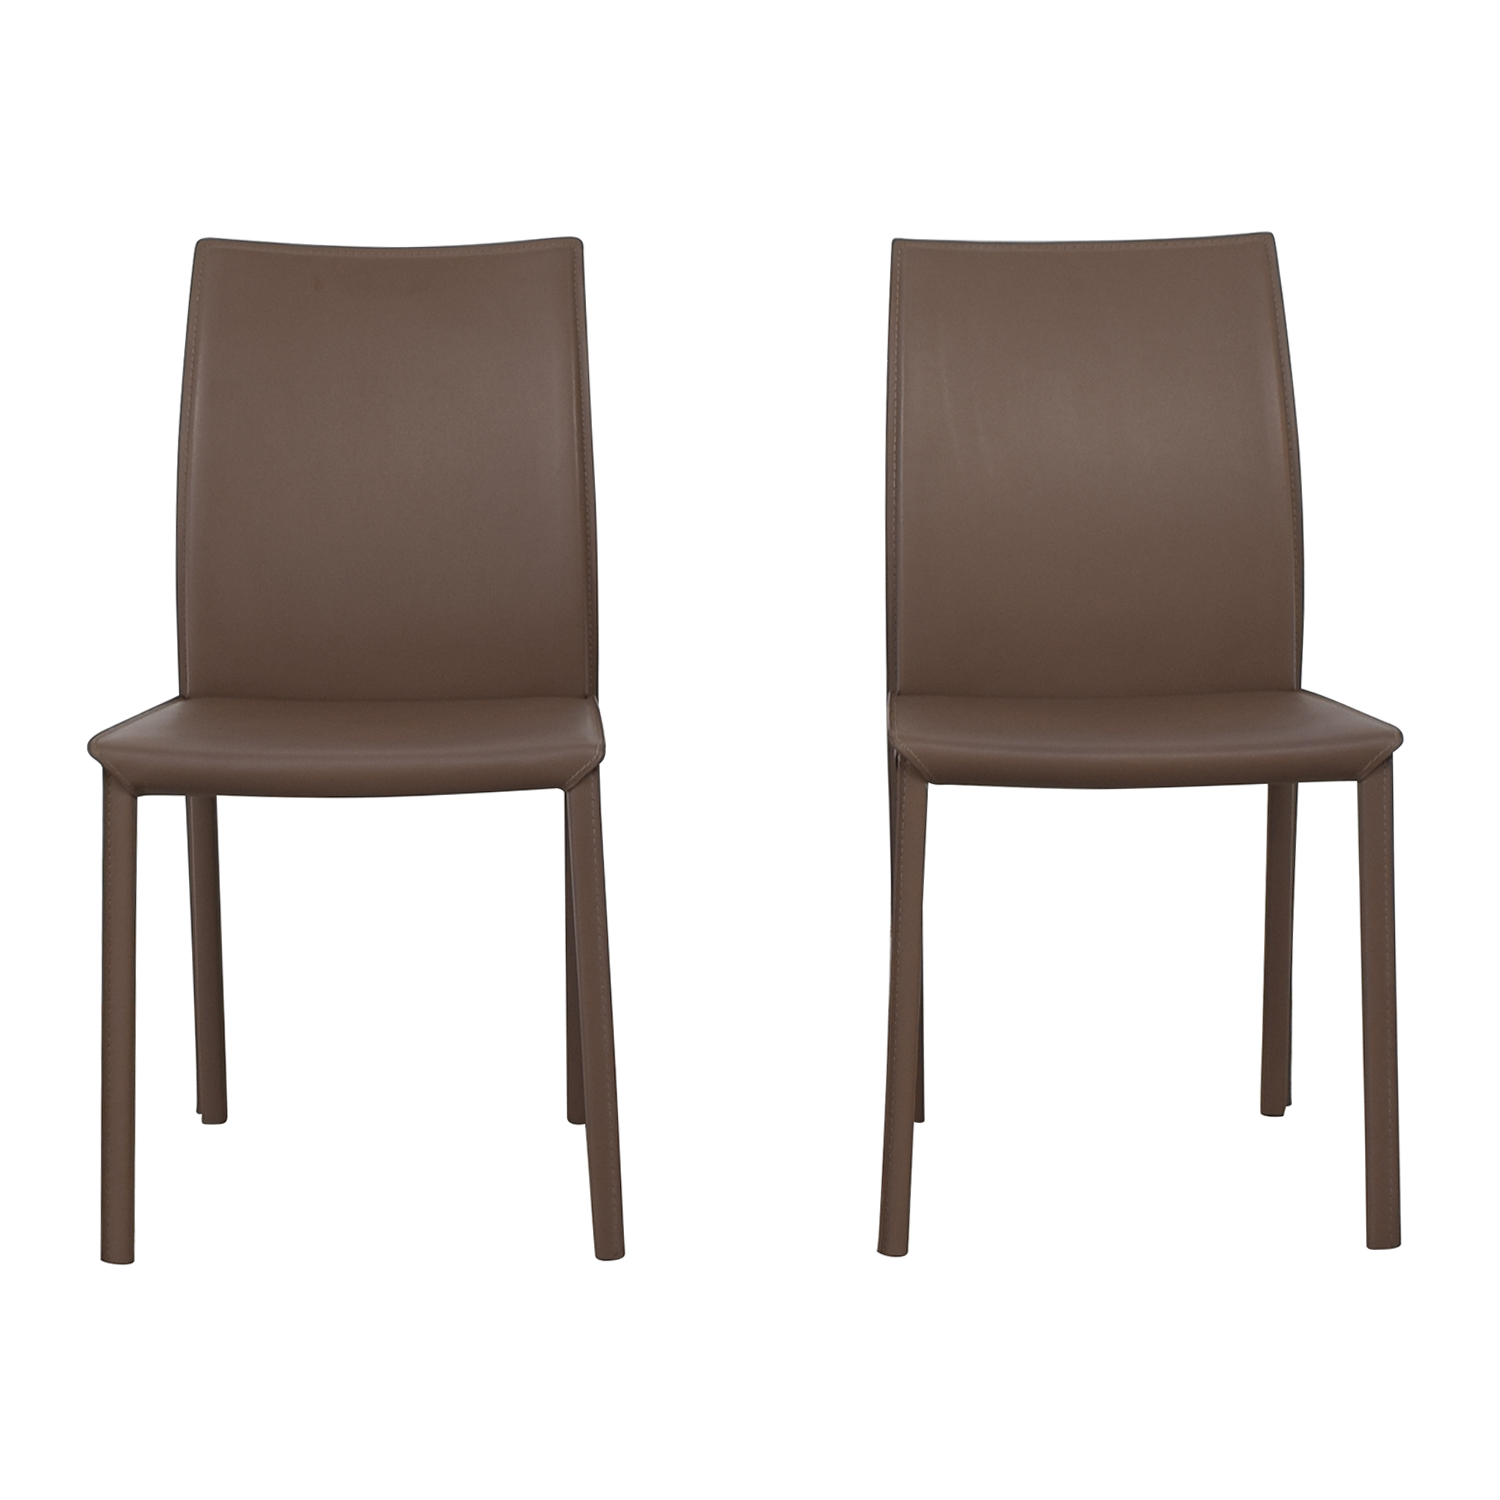 Superb 71 Off Boconcept Boconcept Zarra Dining Chairs Chairs Caraccident5 Cool Chair Designs And Ideas Caraccident5Info